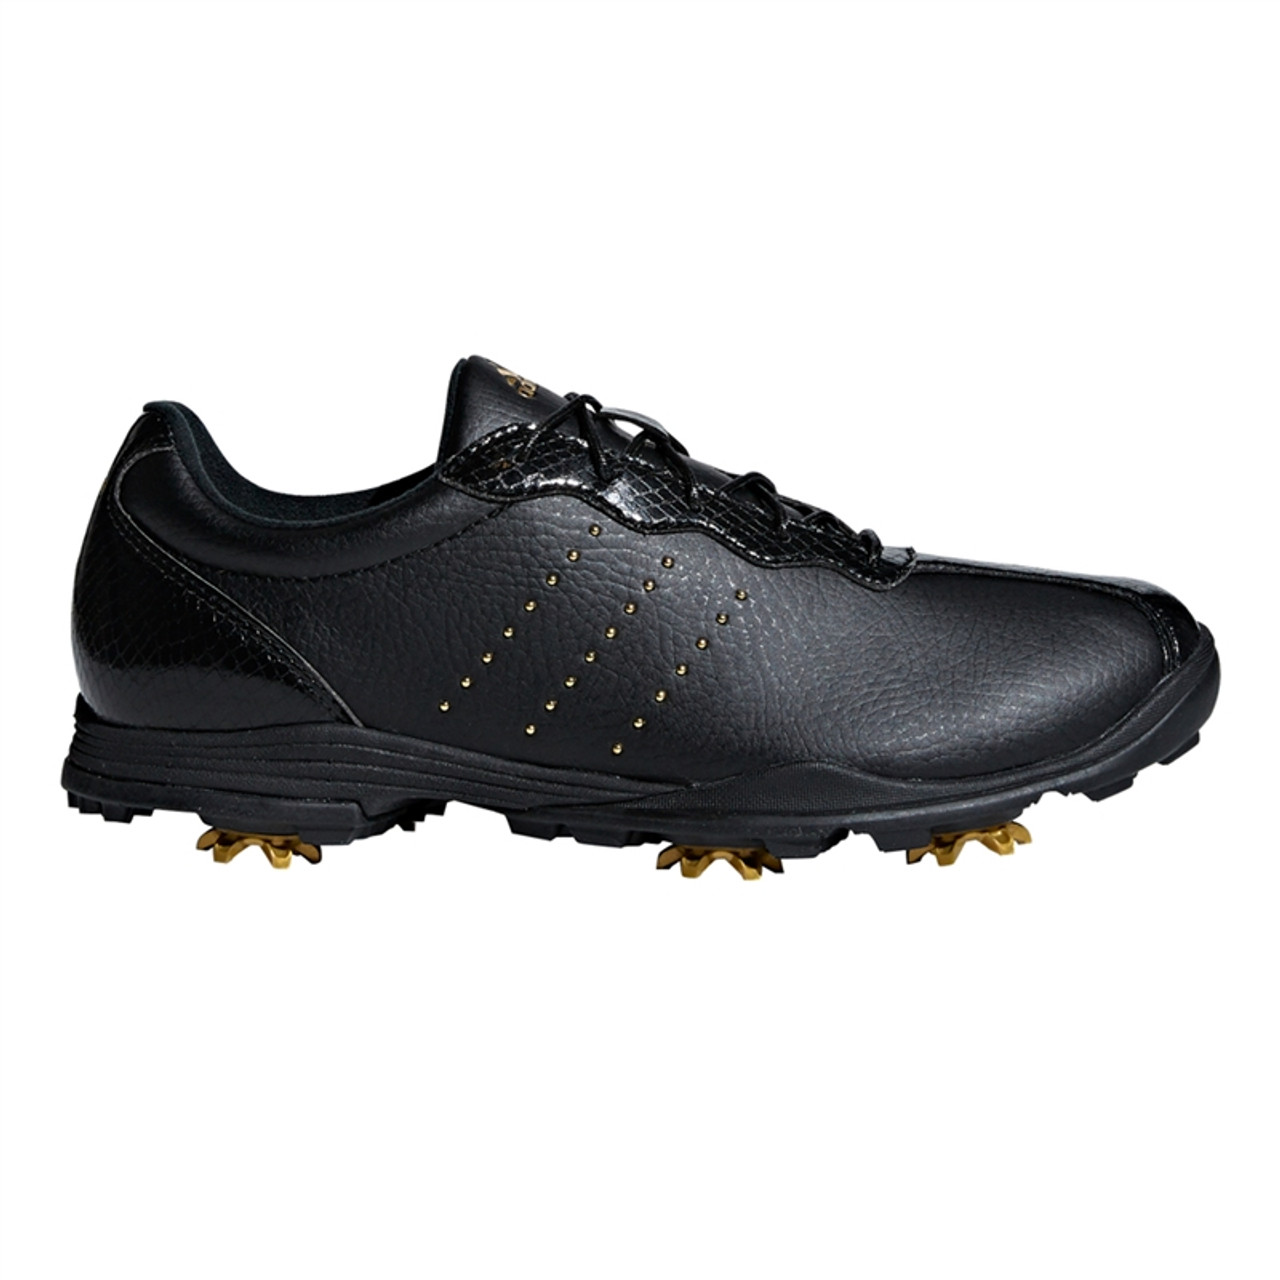 bdf99846b34395 Adidas adiPURE DC Golf Shoe - Black Gold